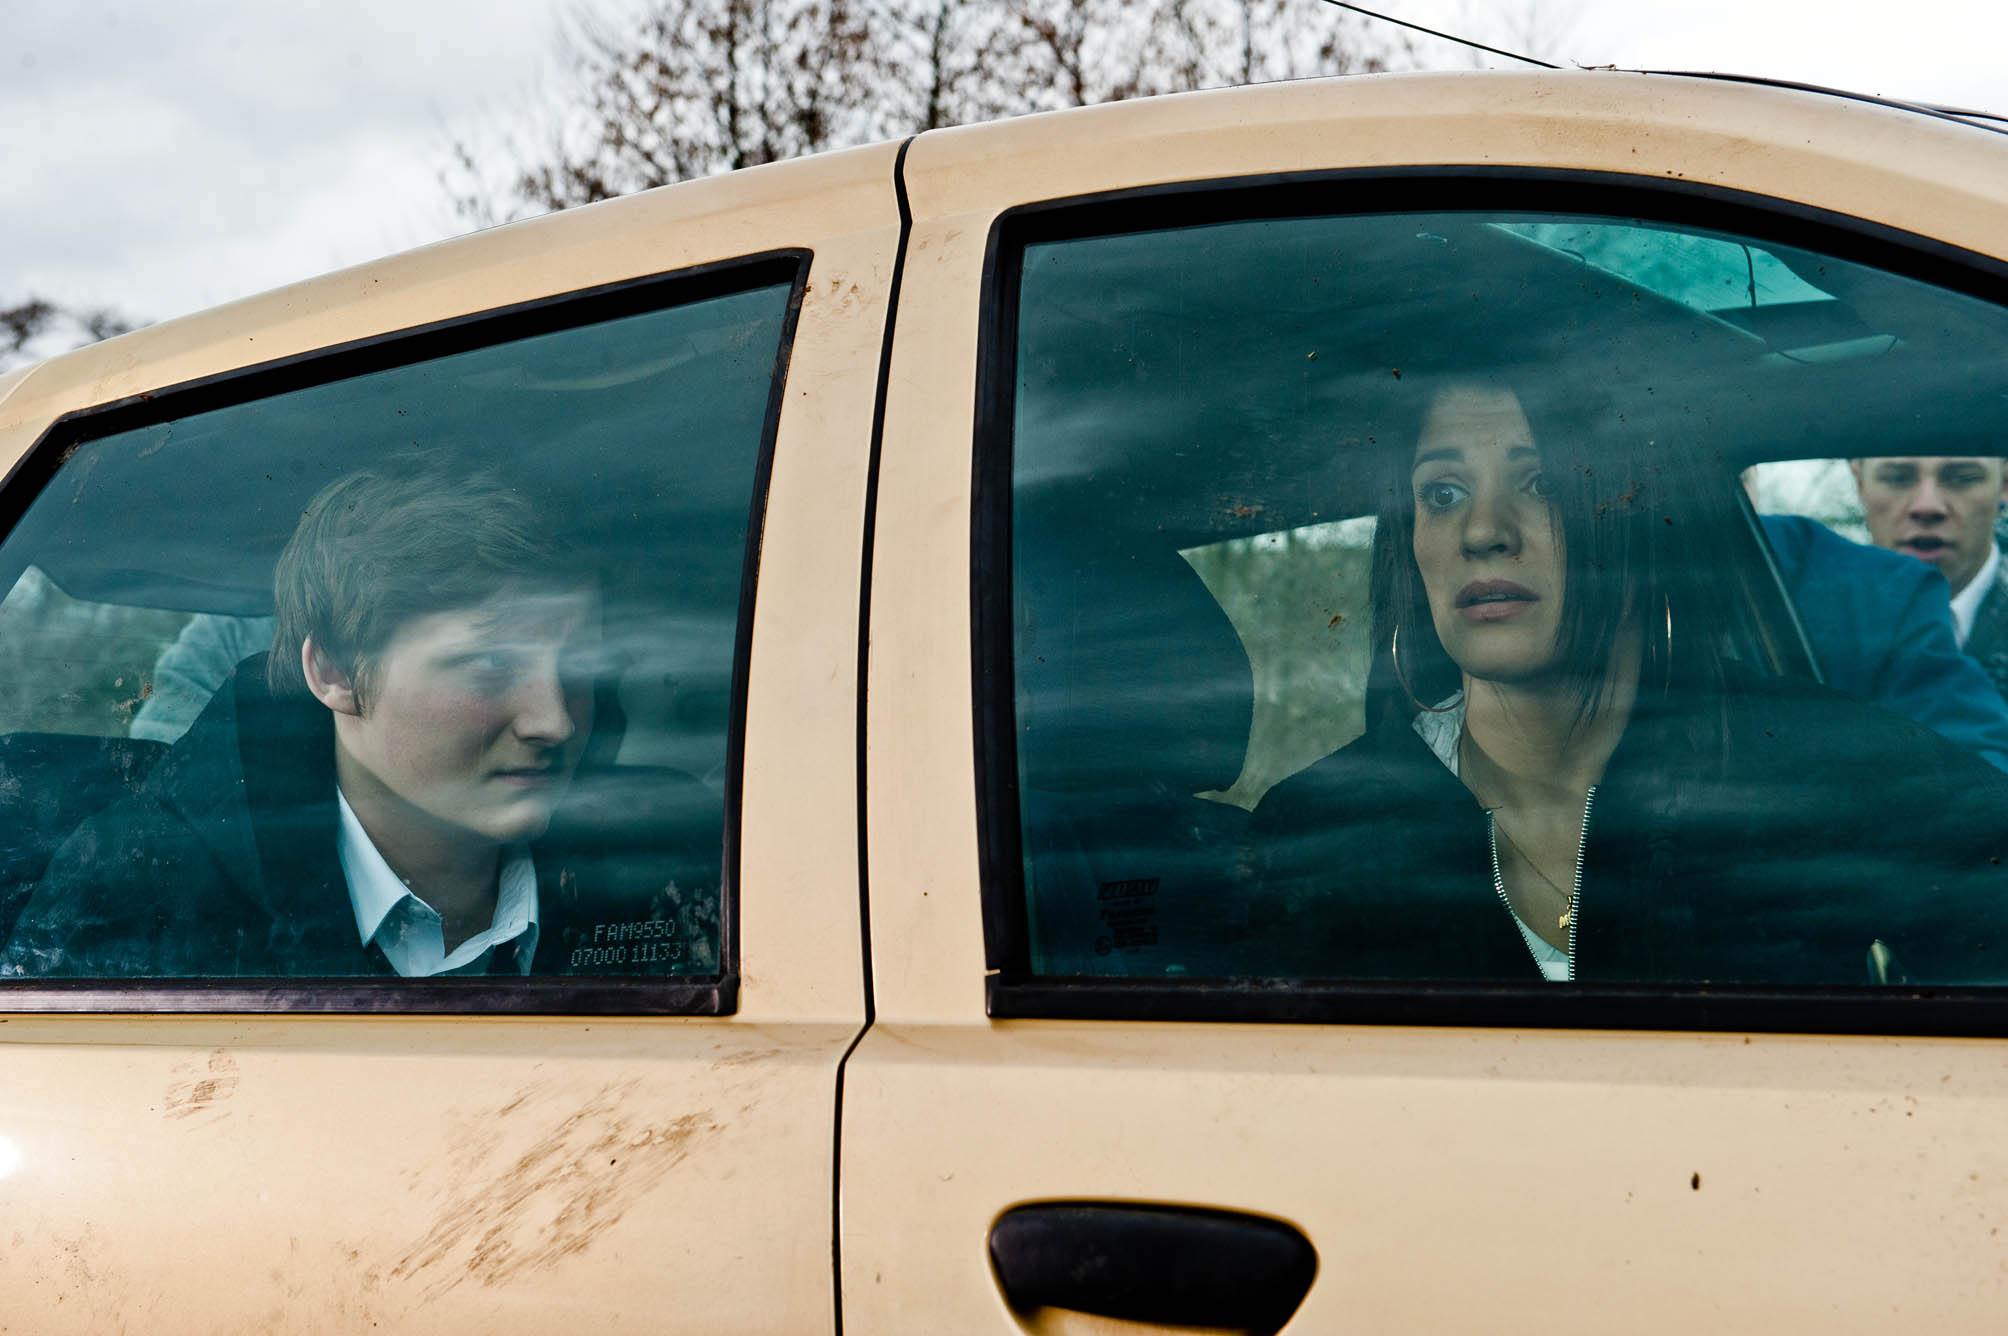 FROM ITV STRICT EMBARGO -TV Listings Magazines & websites Tuesday 5 May 2015, Newspapers Saturday 9 May 2015  Emmerdale - Ep 7181 Wednesday 13th May 2015 Alicia Metcalfe [NATALIE ANDERSON] calls the police as the lads throw stones at the car with her and Lachlan White [THOMAS ATKINSON] trapped inside. Picture contact: david.crook@itv.com on 0161 952 6214 Photographer - Amy Brammall This photograph is (C) ITV Plc and can only be reproduced for editorial purposes directly in connection with the programme or event mentioned above, or ITV plc. Once made available by ITV plc Picture Desk, this photograph can be reproduced once only up until the transmission [TX] date and no reproduction fee will be charged. Any subsequent usage may incur a fee. This photograph must not be manipulated [excluding basic cropping] in a manner which alters the visual appearance of the person photographed deemed detrimental or inappropriate by ITV plc Picture Desk. This photograph must not be syndicated to any other company, publication or website, or permanently archived, without the express written permission of ITV Plc Picture Desk. Full Terms and conditions are available on the website www.itvpictures.com